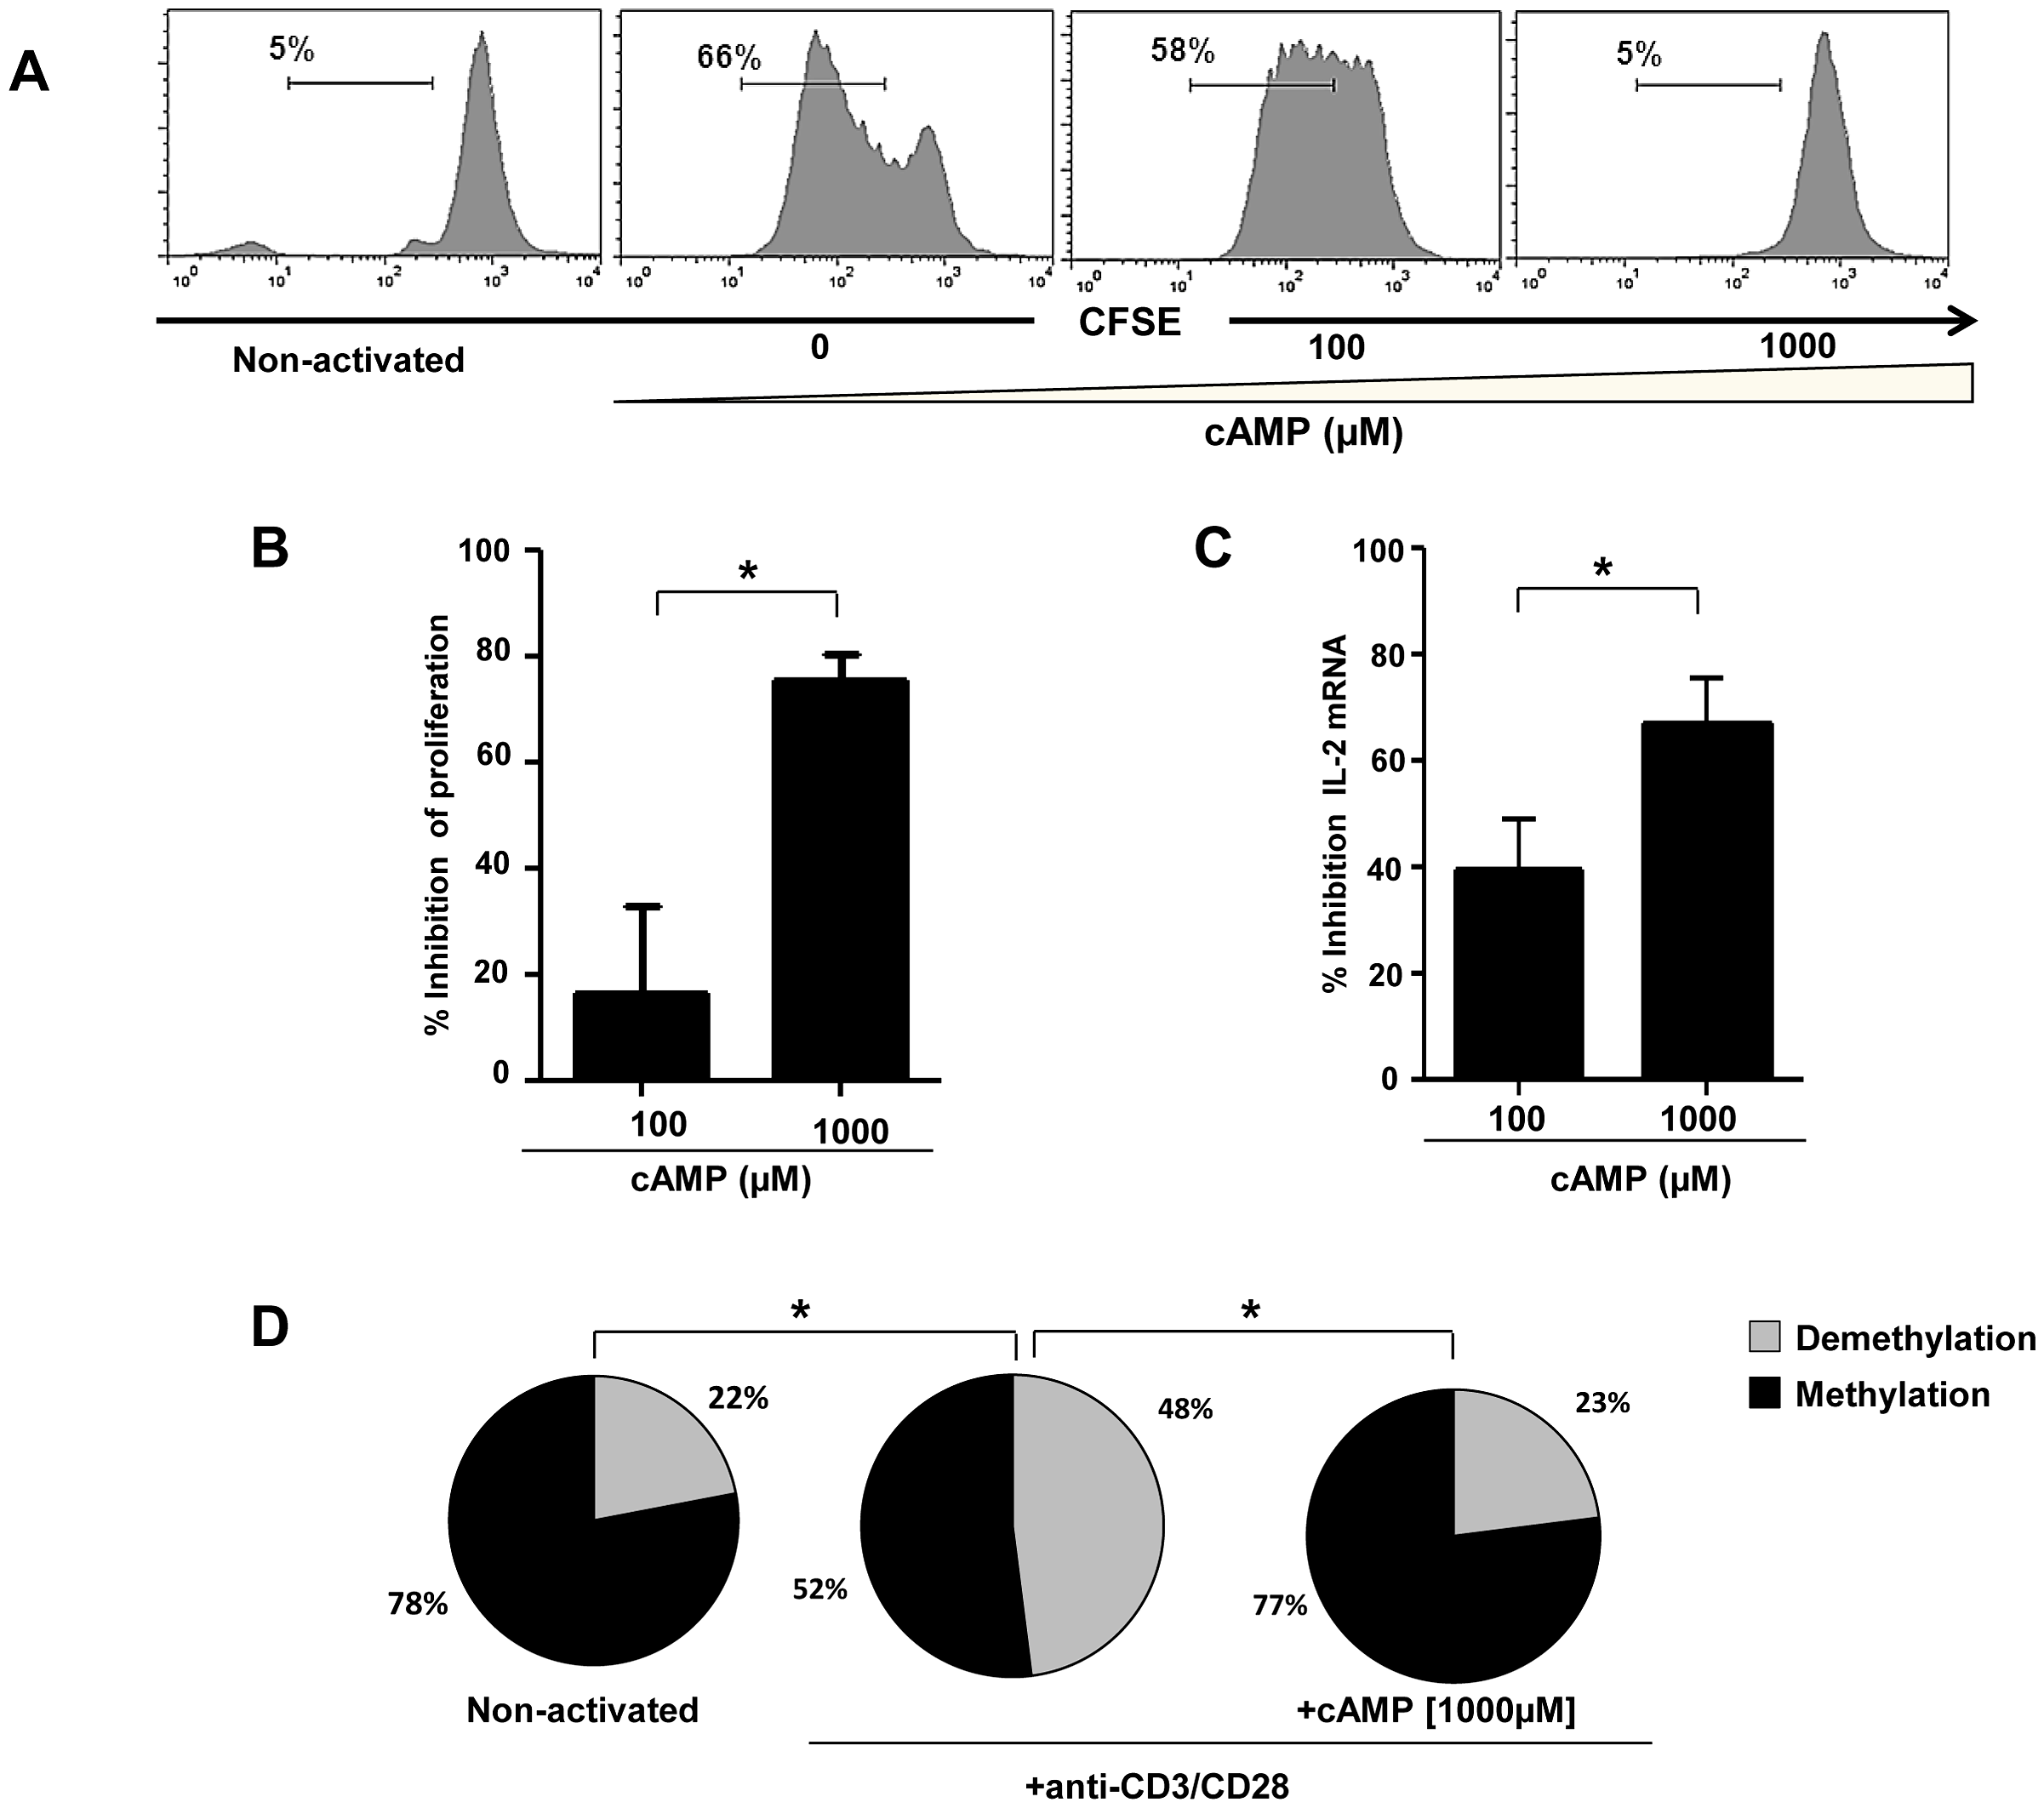 Inhibition of anti-CD3/CD28 mAbs stimulated naive CD4+ T cell proliferation and IL-2 production by cAMP.